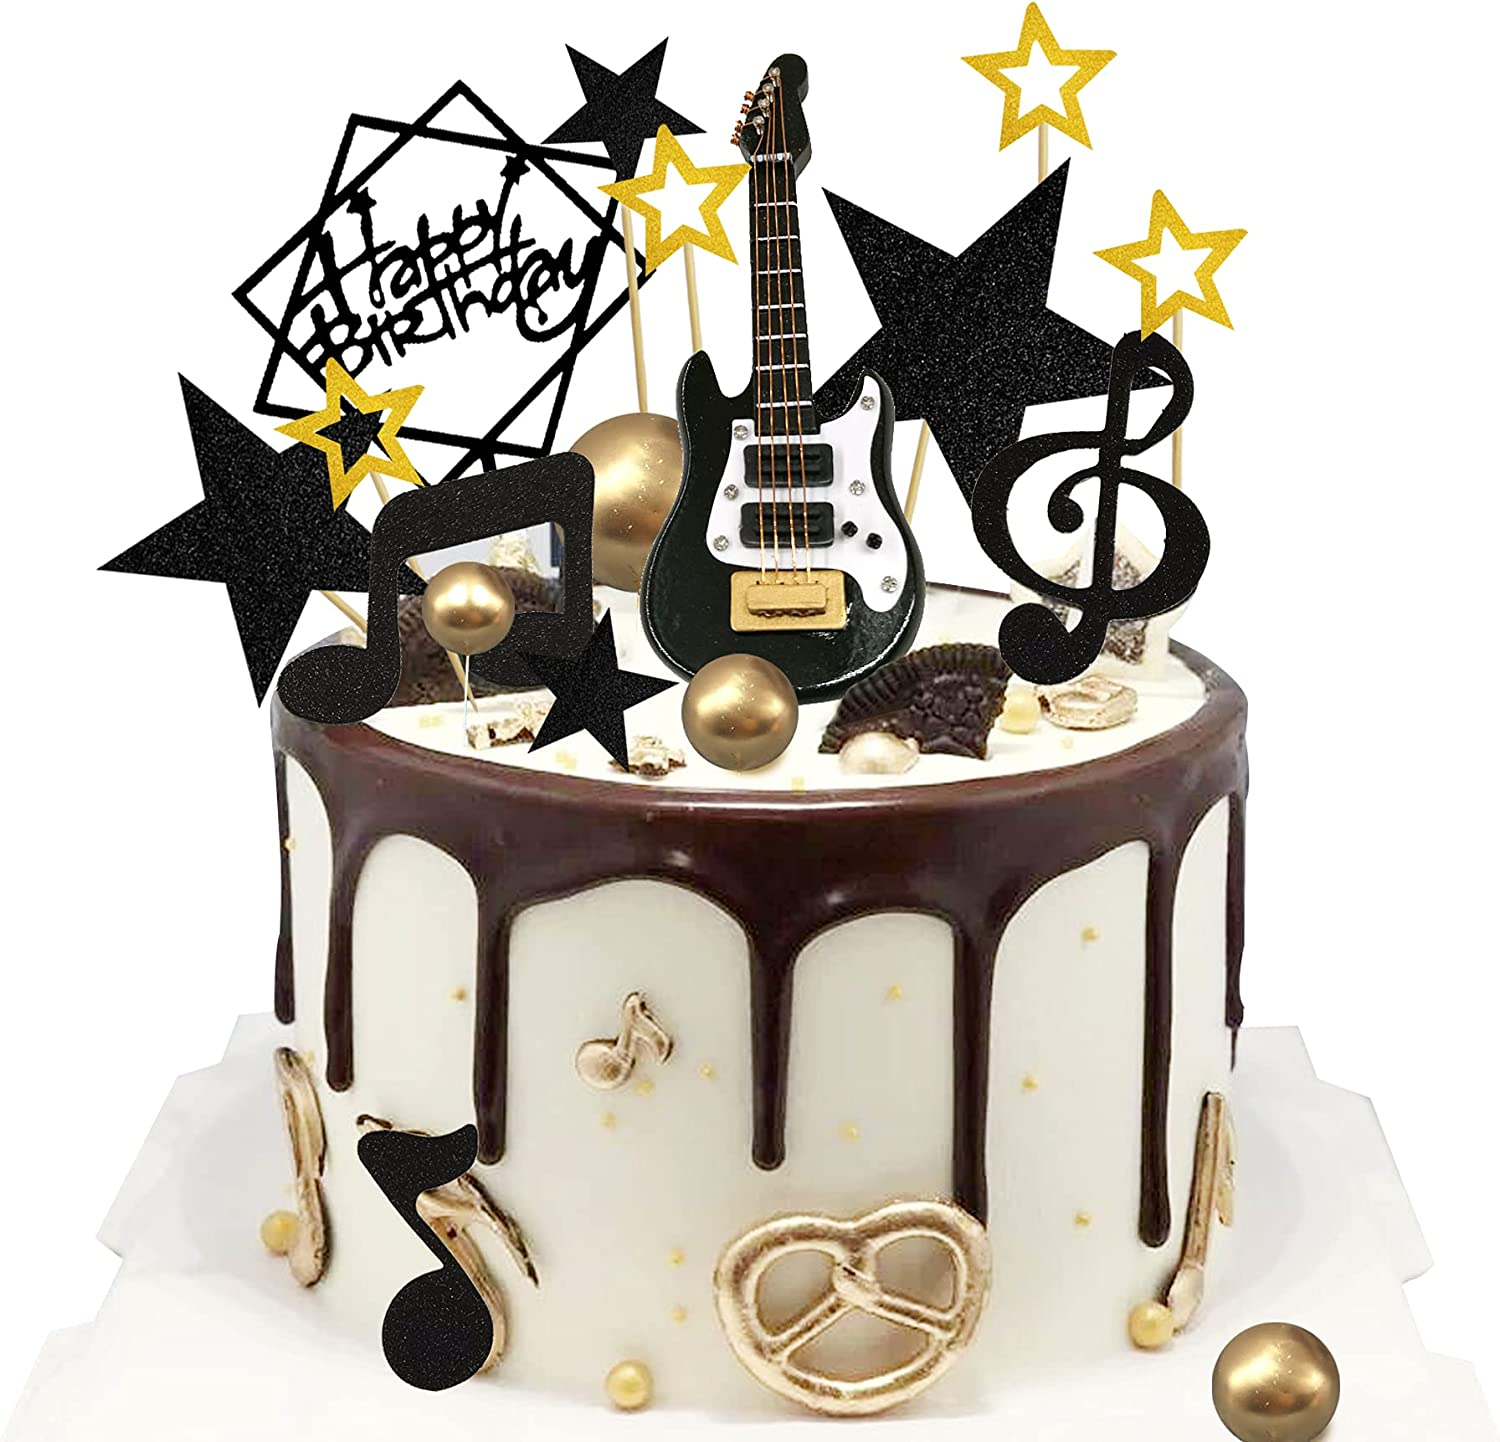 24PCS Guitar Cake Toppers Note Music 1:12 Dealing full price reduction Birthday safety